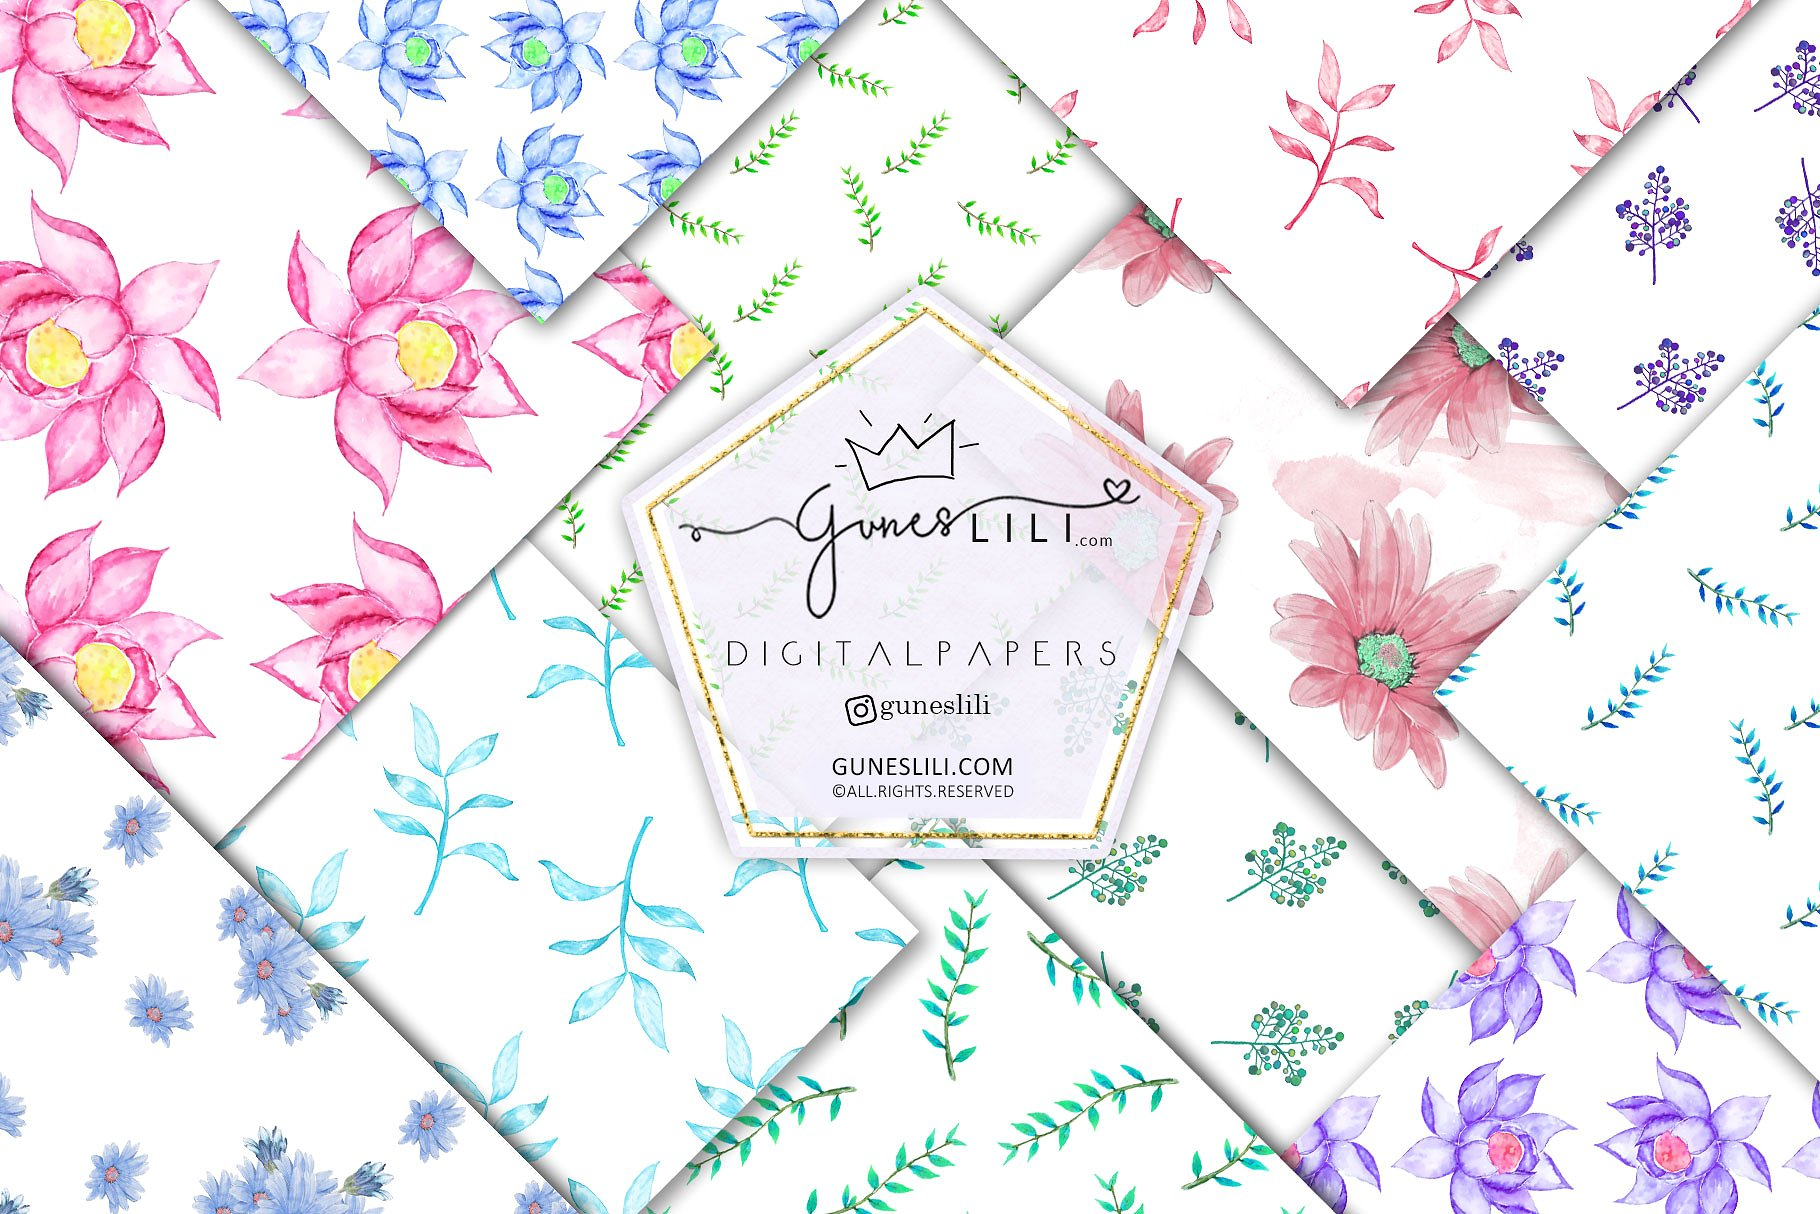 Watercolor Floral Digital Paper Pack Floral Seamless Pattern example image 1